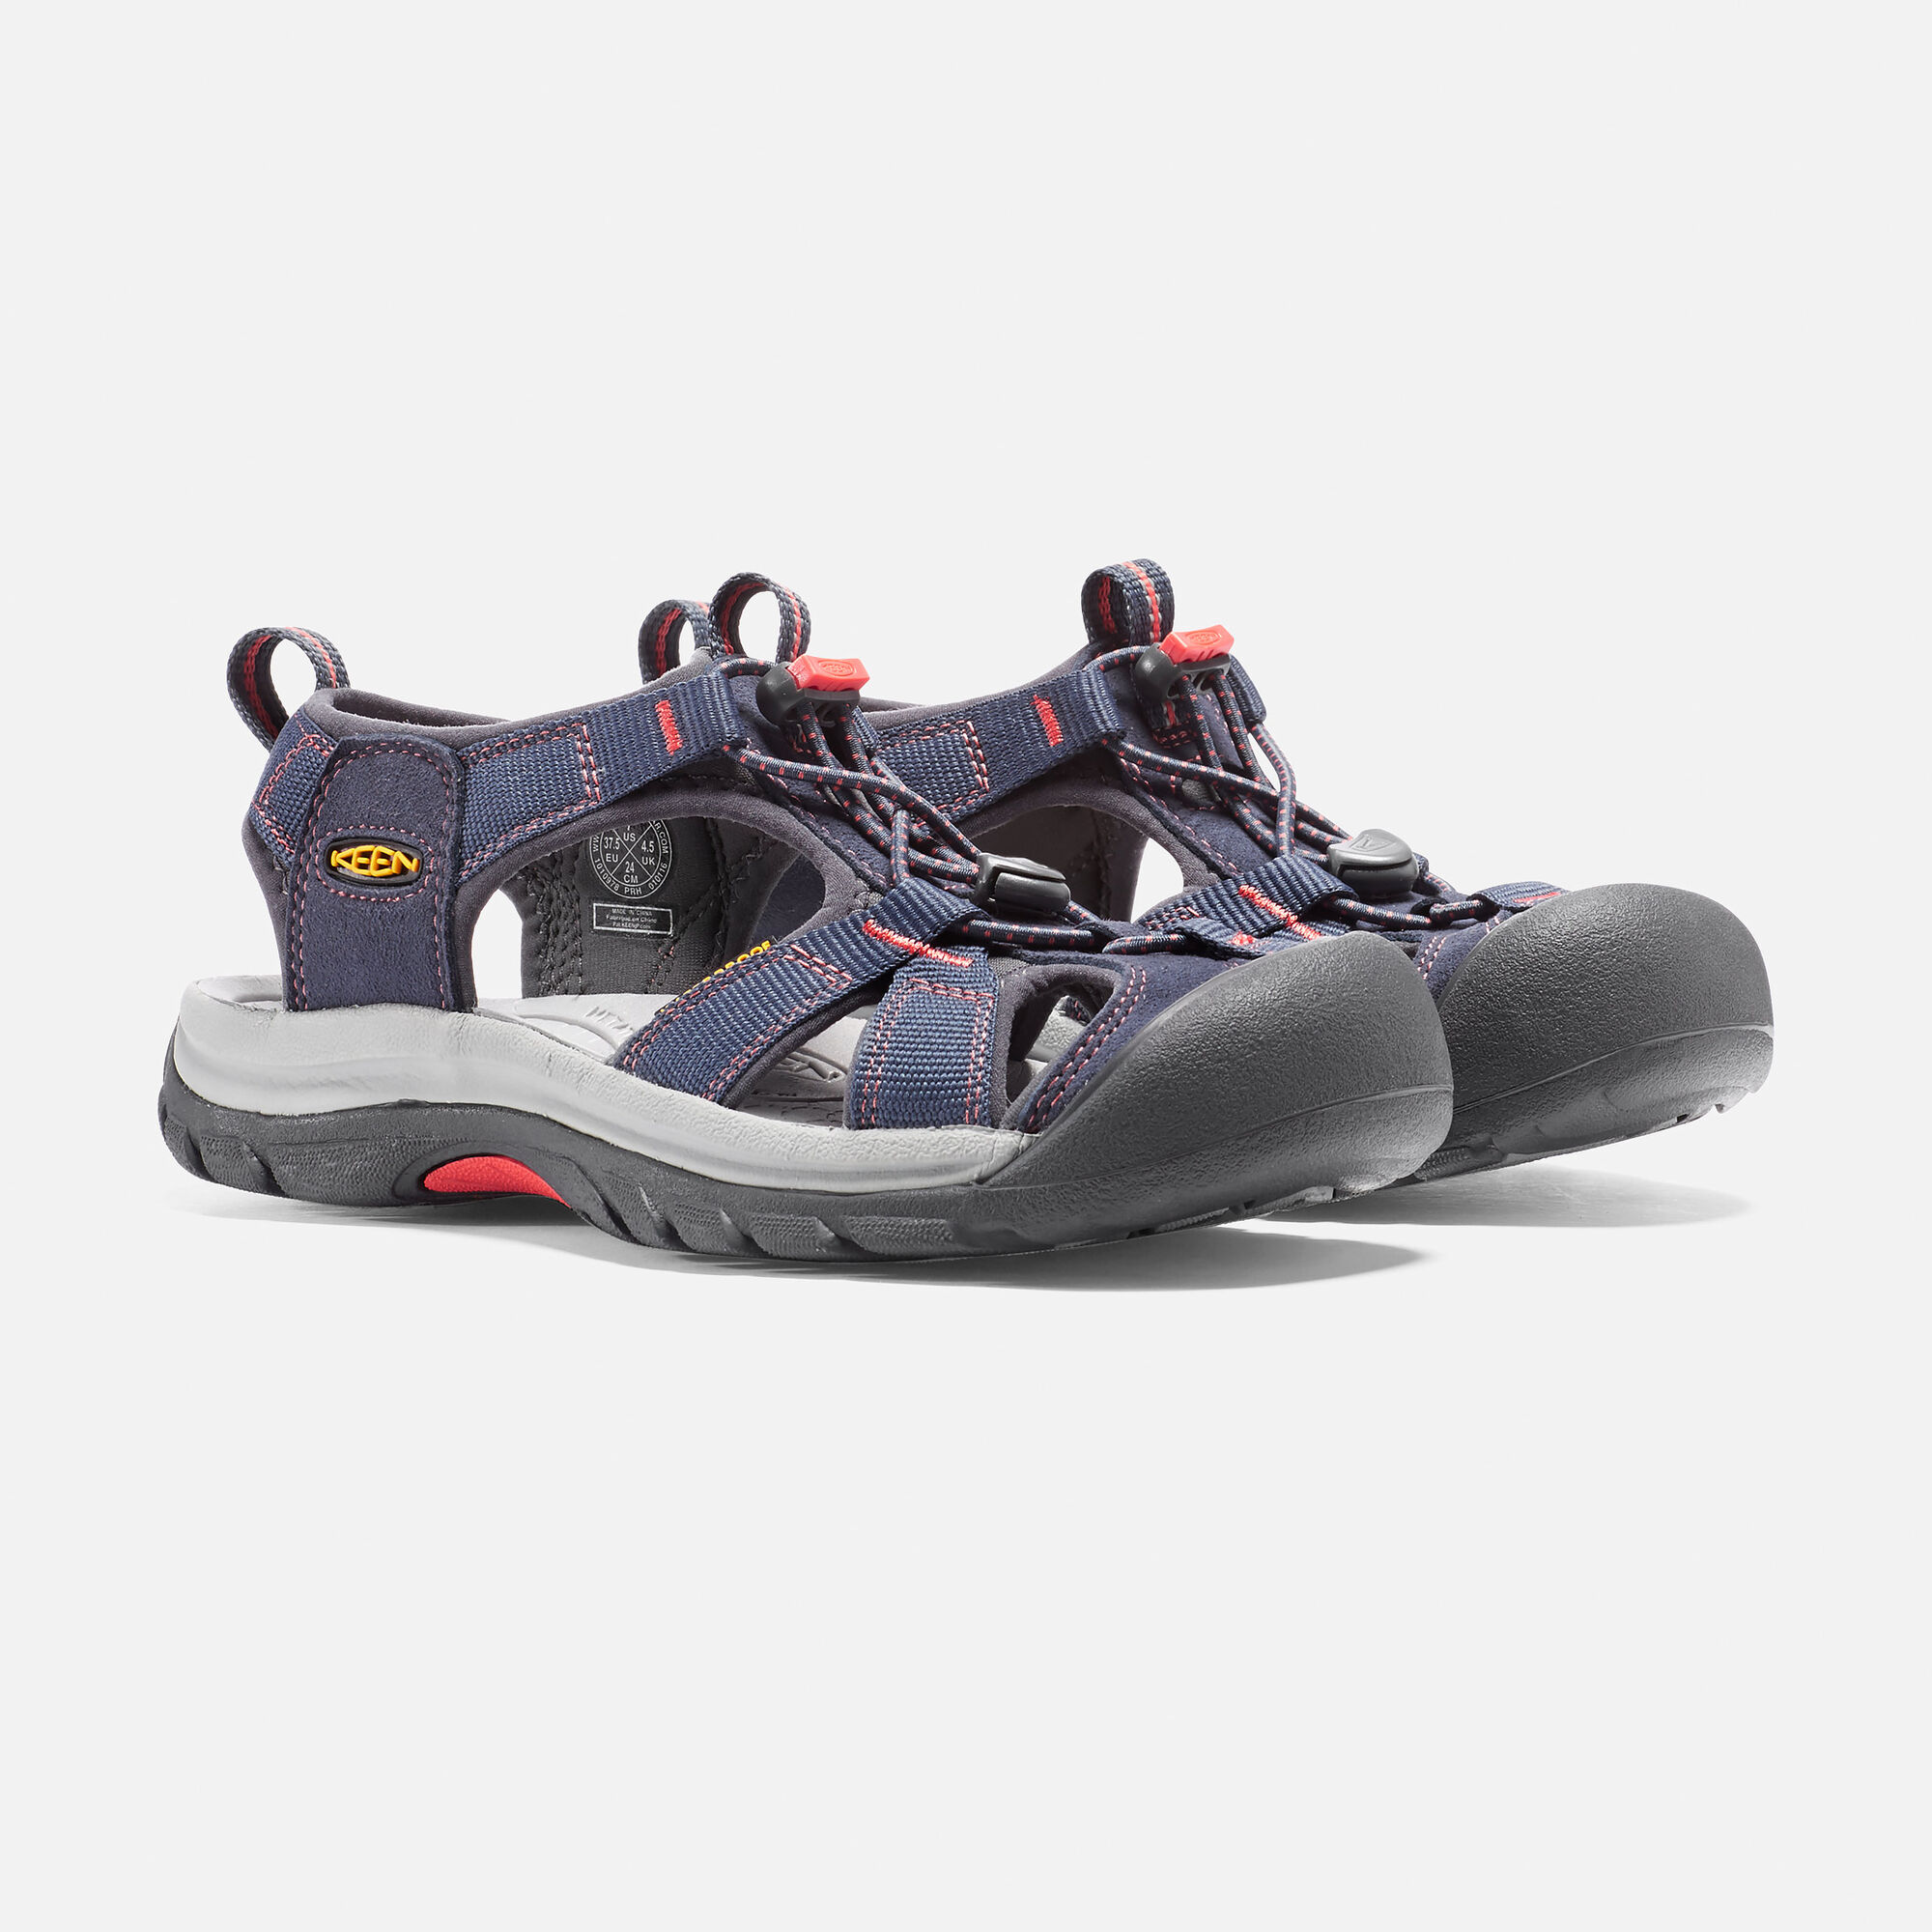 161ea819f2 Women's Venice H2 in Midnight Navy/Hot Coral - small view.